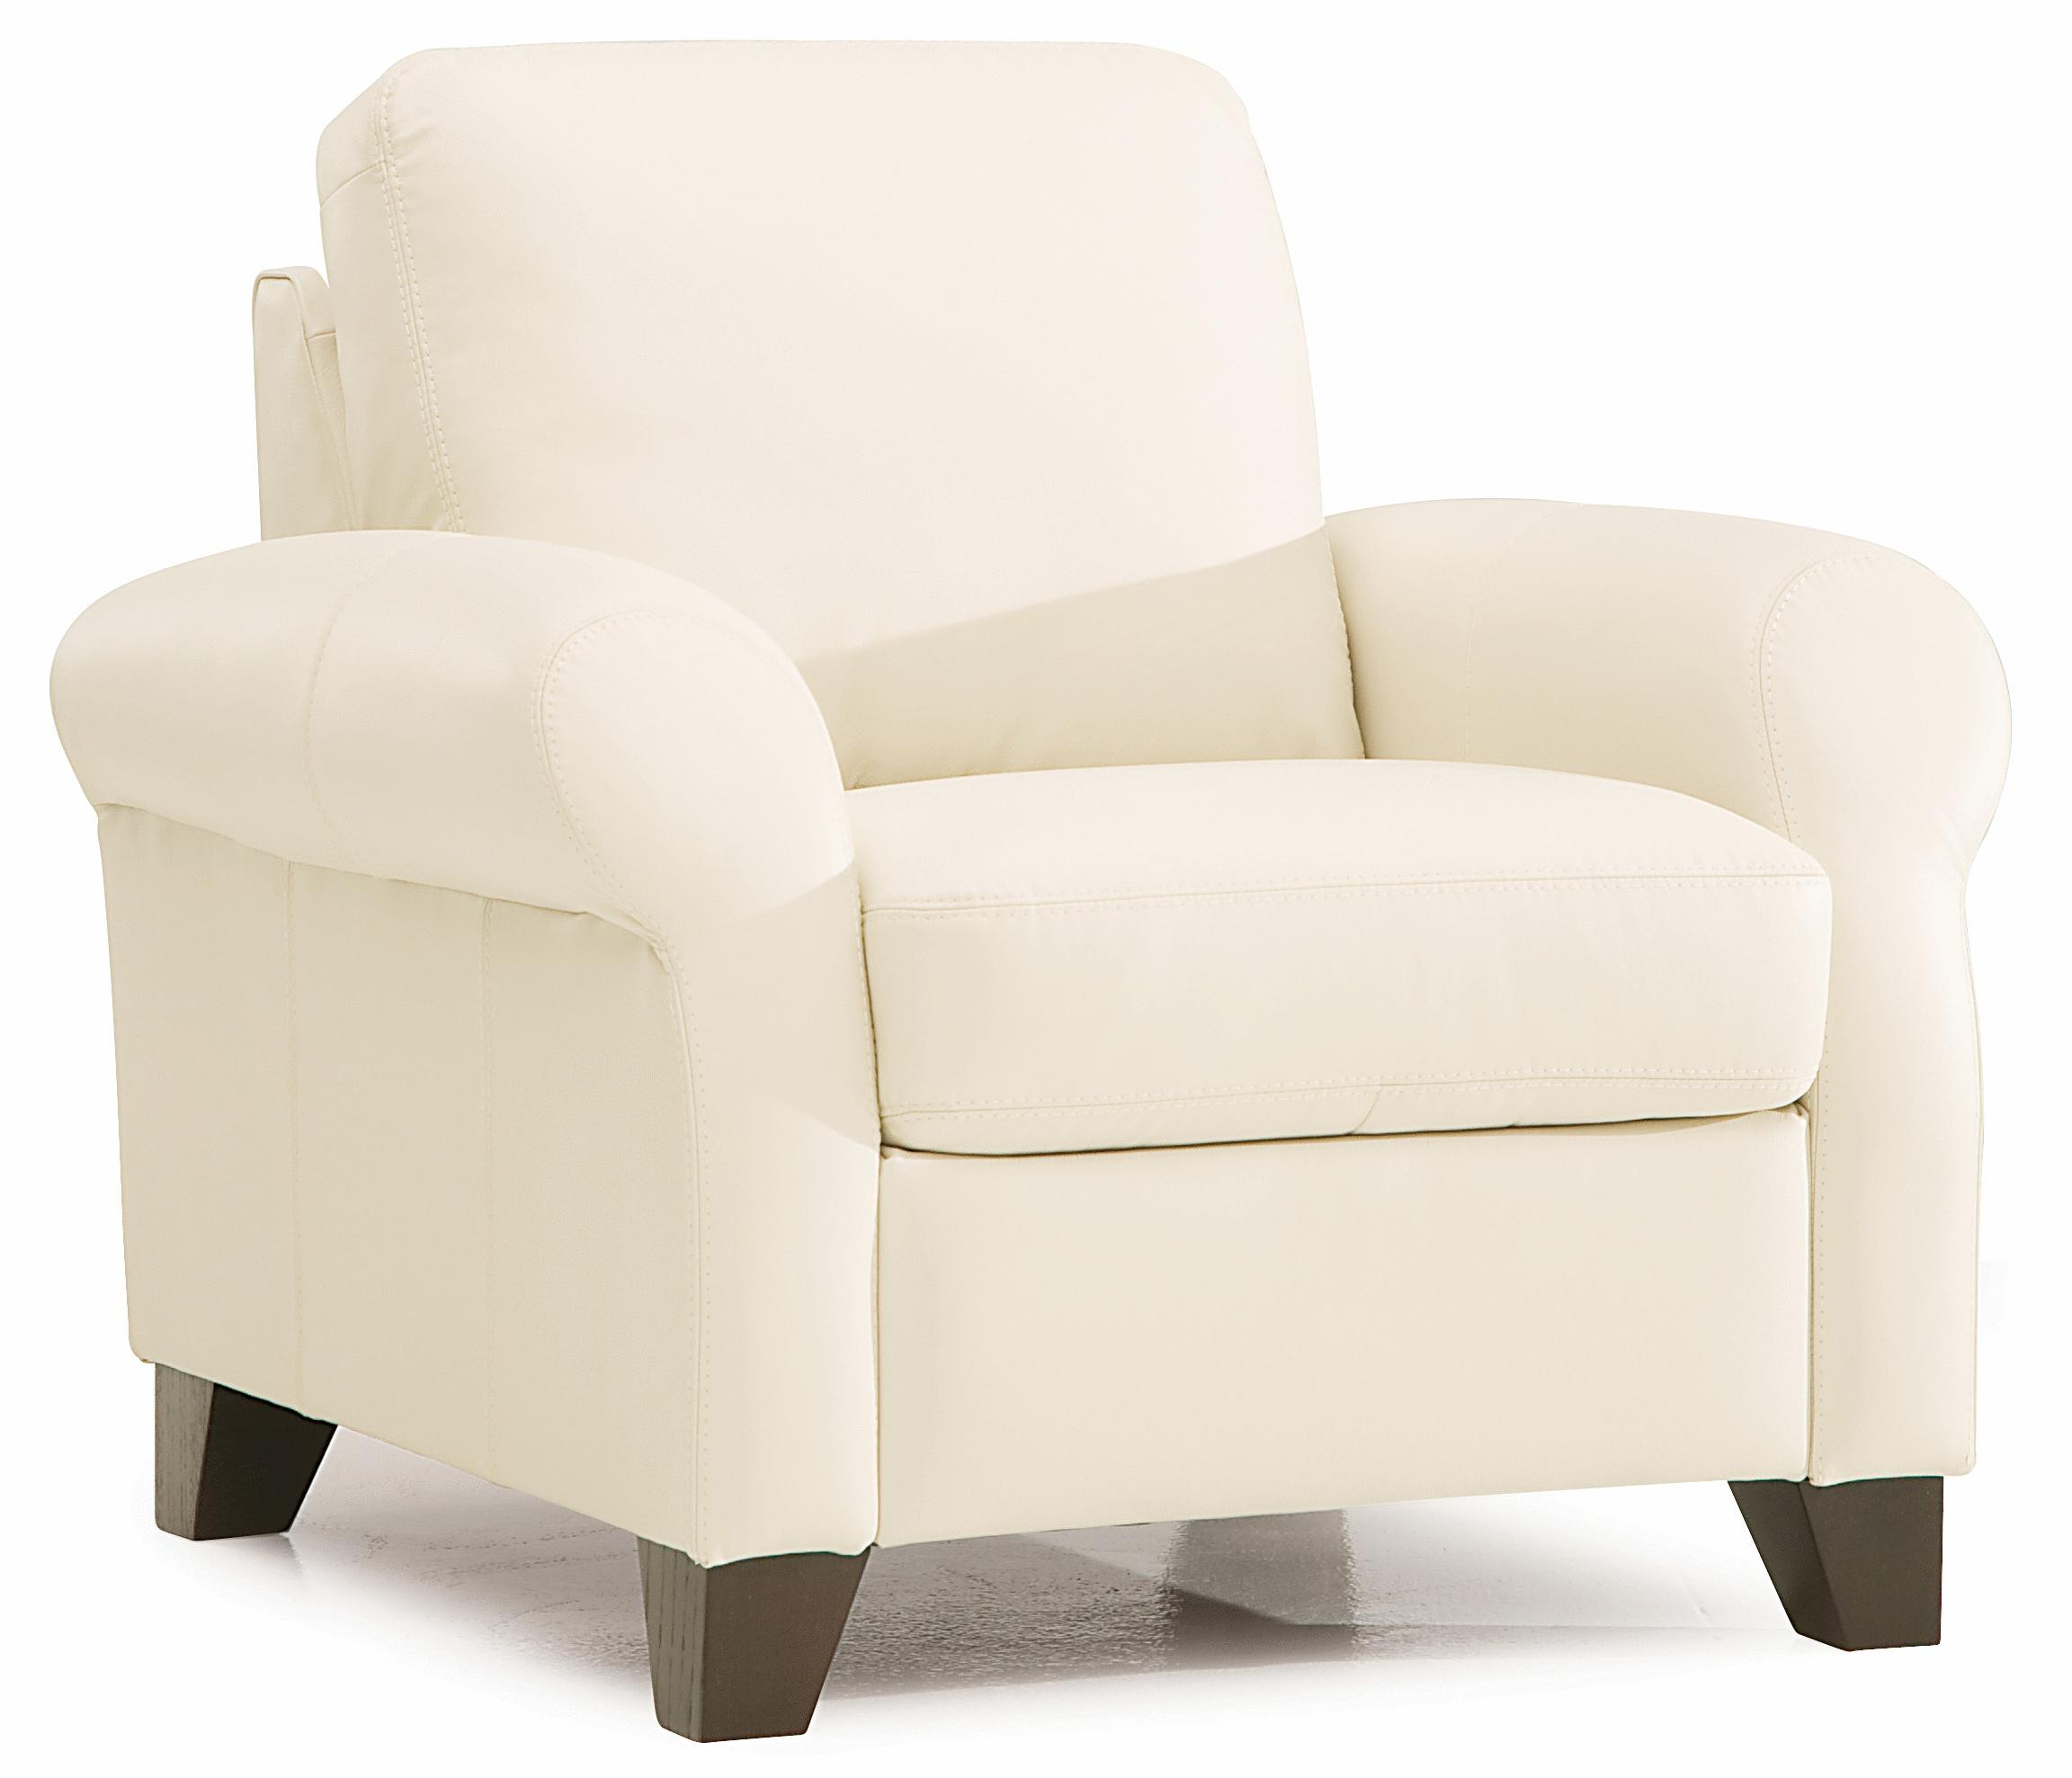 Palliser Ottawa 77338 02 Transitional Chair With Sock Arms And Wood Legs Dunk Bright